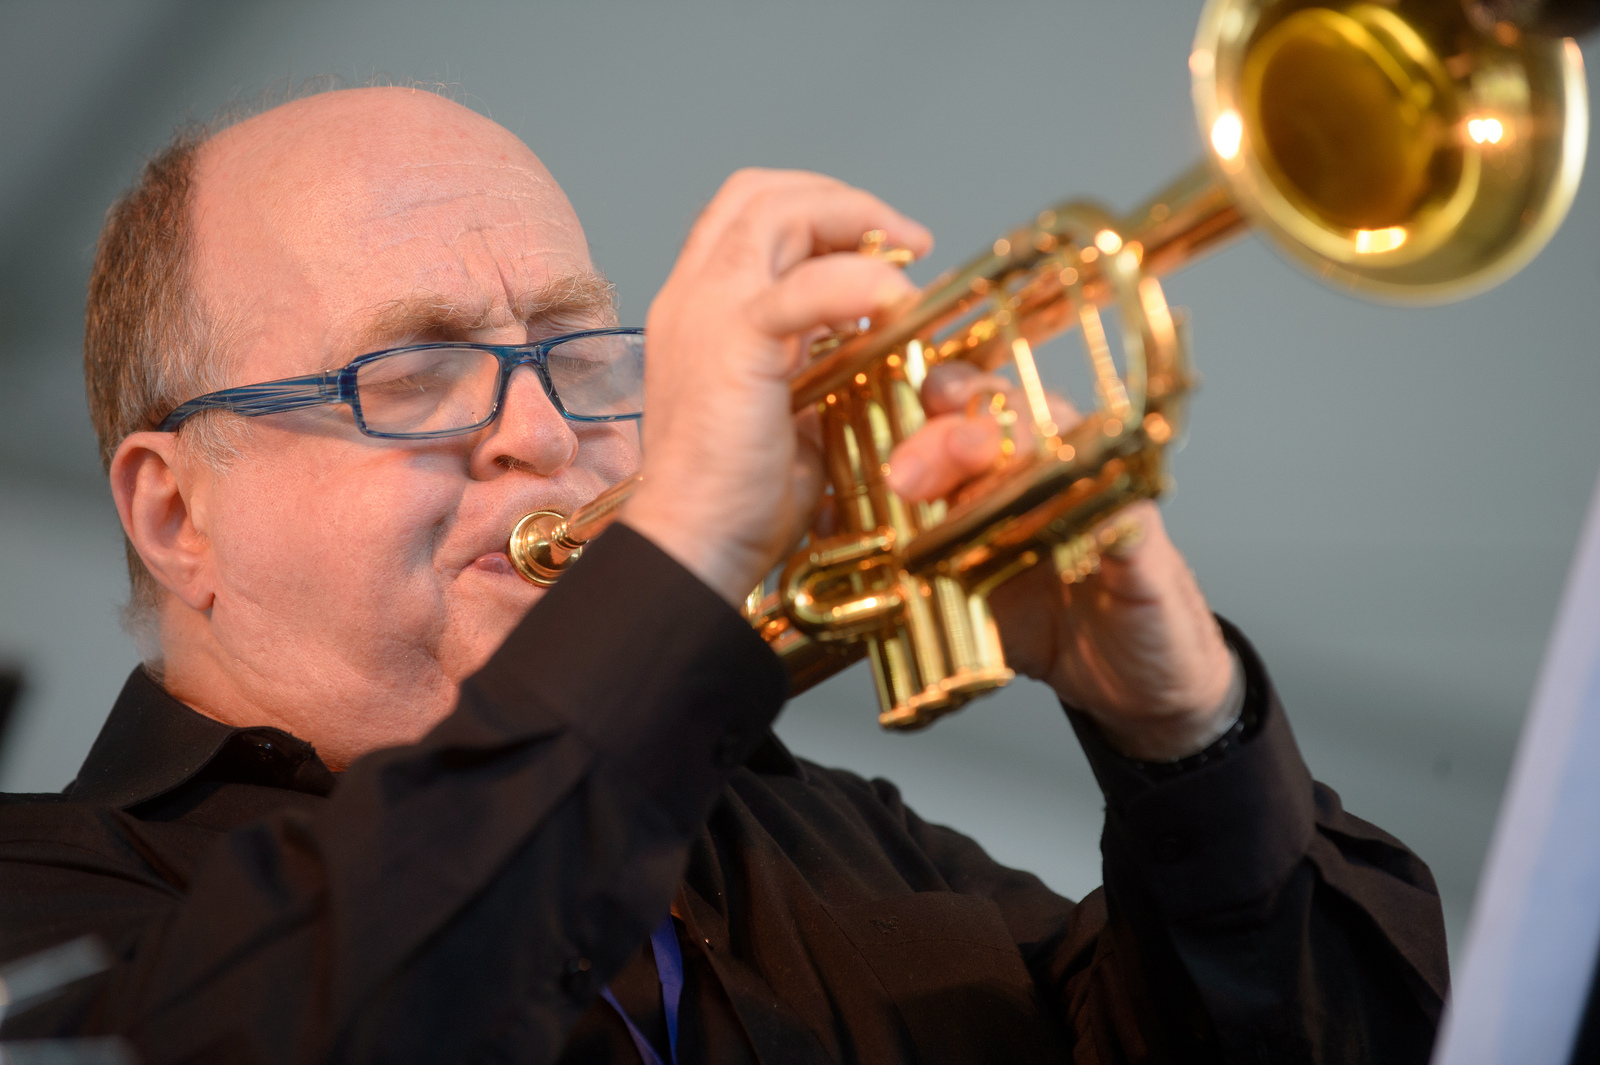 Take a New Orleans-style brass band, then shrink it: That's the Ray Anderson Pocket Brass Band playing the Sweet Chicago Suite. Pictured here is trumpeter Lew Soloff.